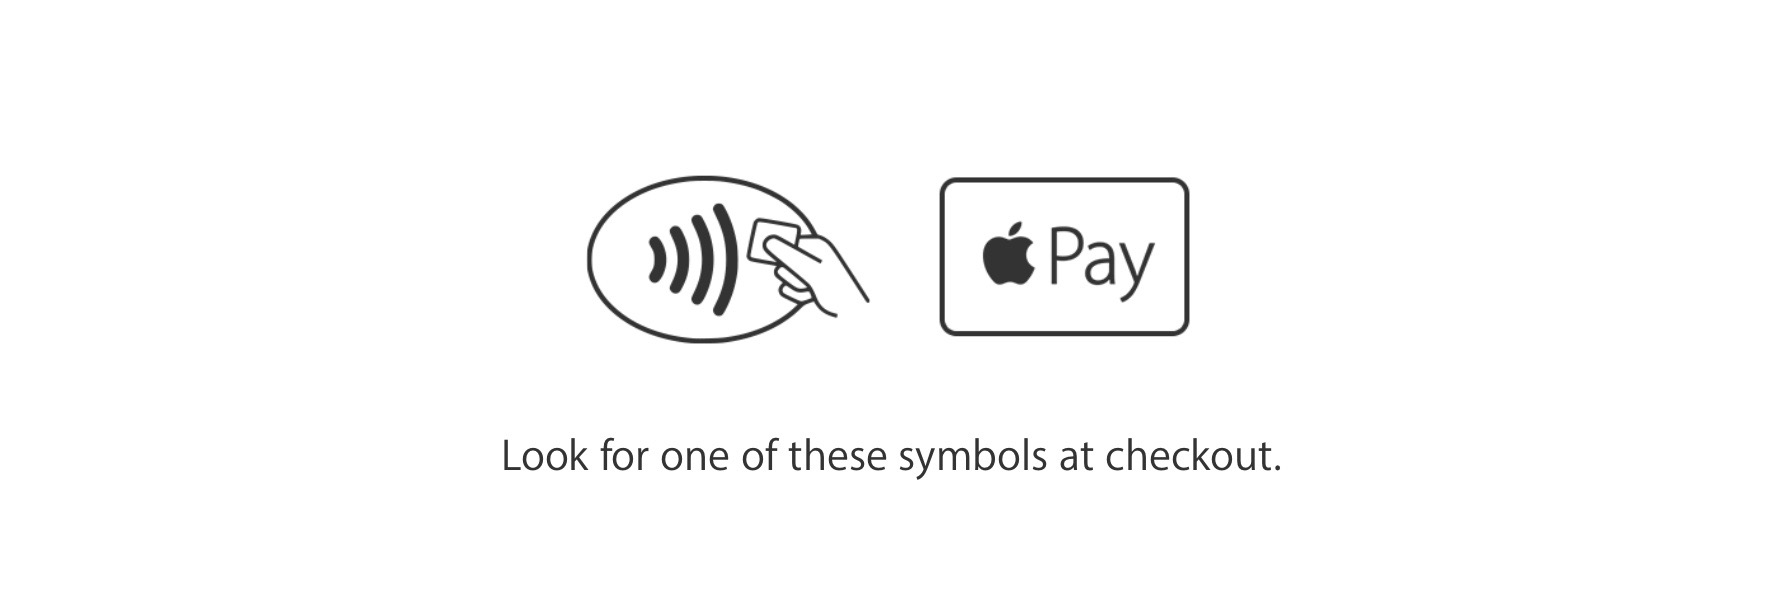 How to set up Apple Pay on iPhone, iPad, Apple Watch, or Mac